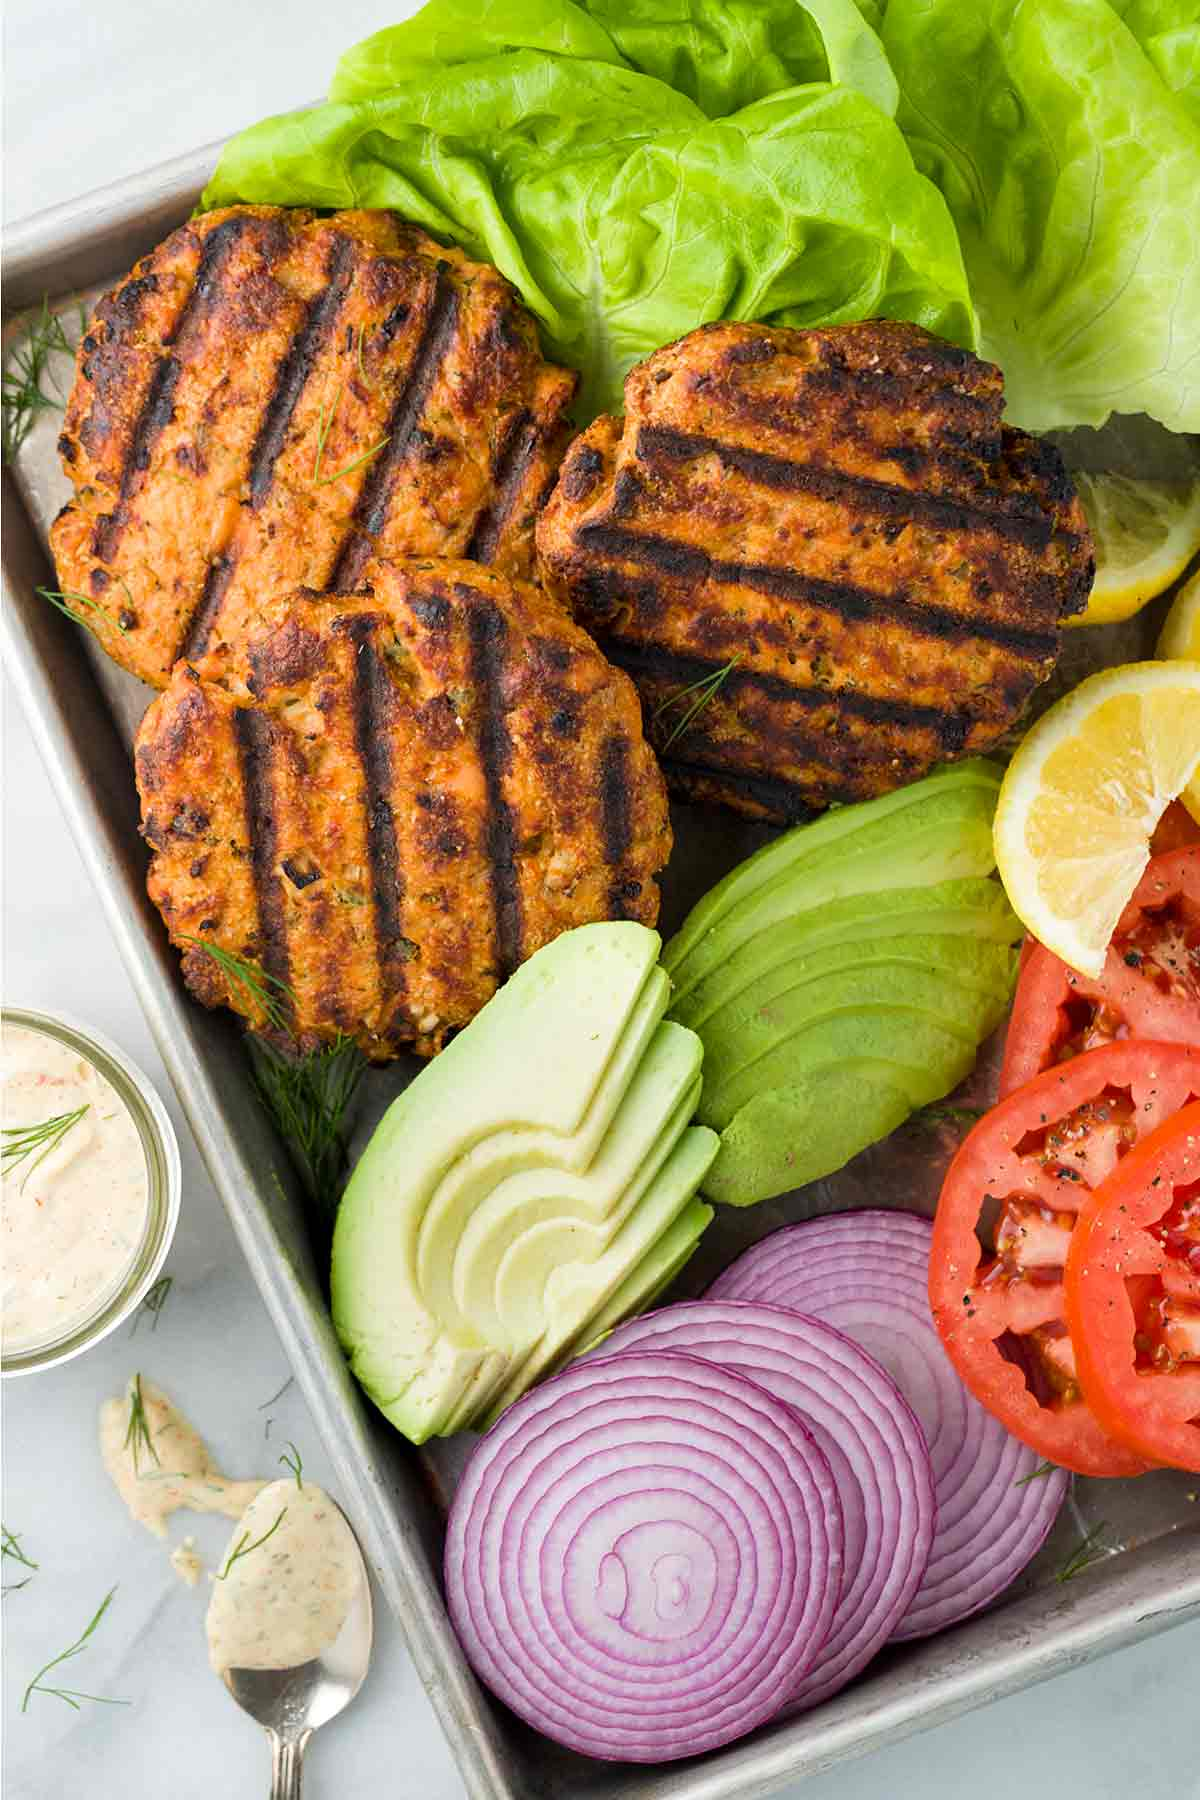 Salmon patties with dark grill lines on a table with avocado, onions, bibb lettuce and tomato